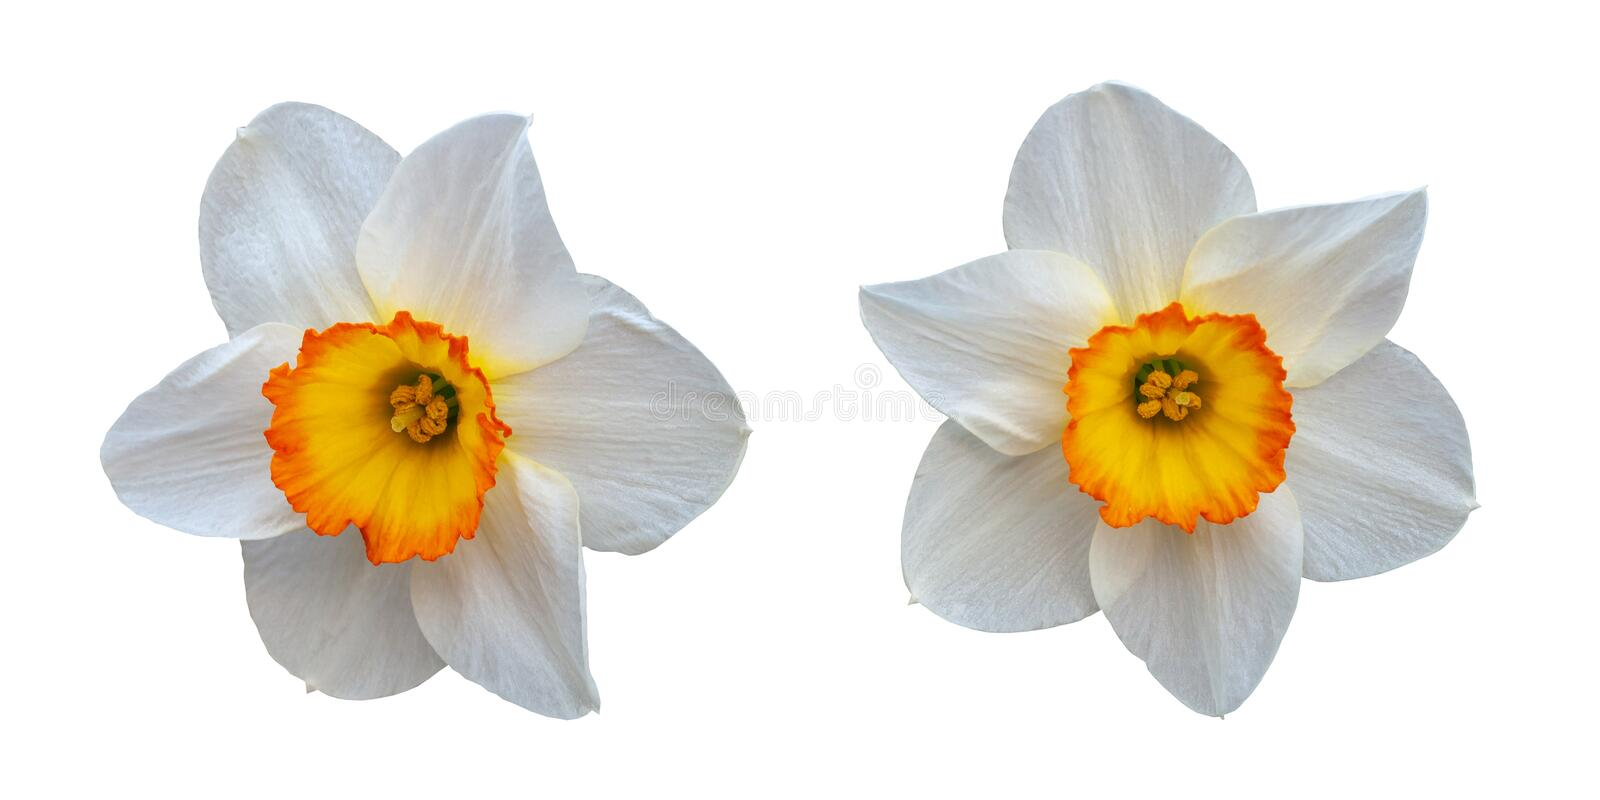 Two beautiful white daffodils with a yellow center royalty free stock photo